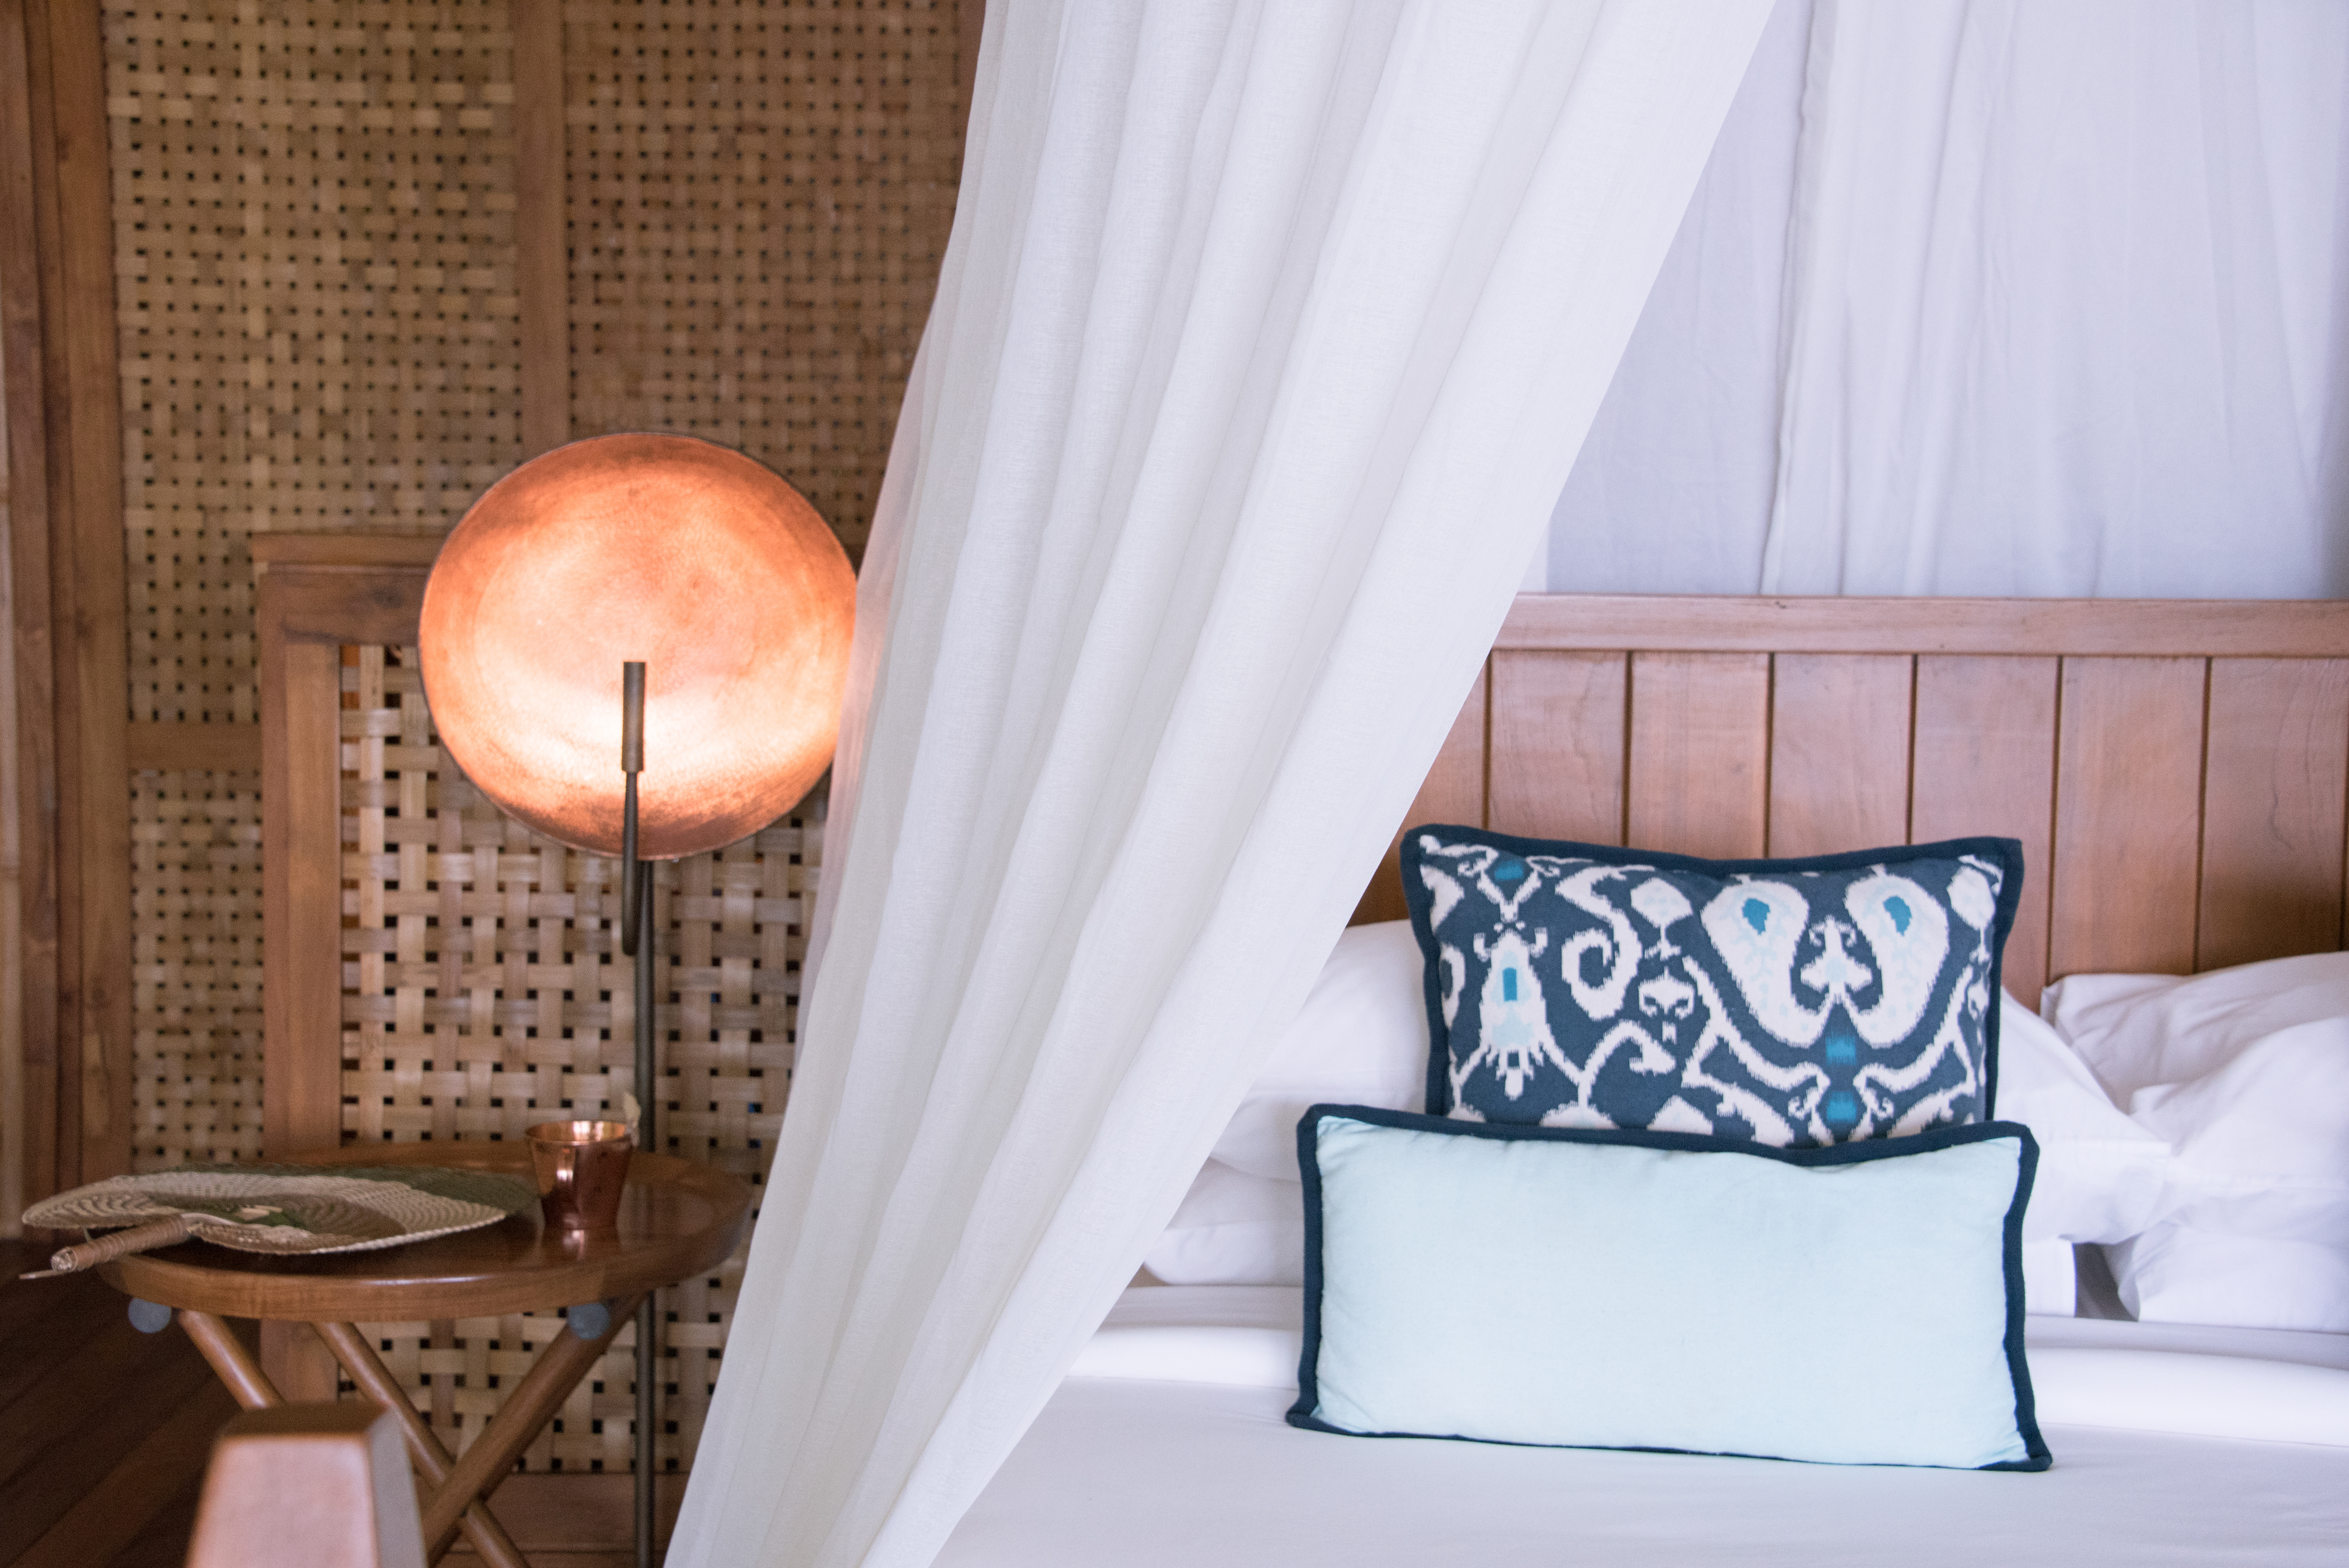 white_bed_canopy_with_cooper_bed_side_light_with_rattan_fan_on_table_beach_suite